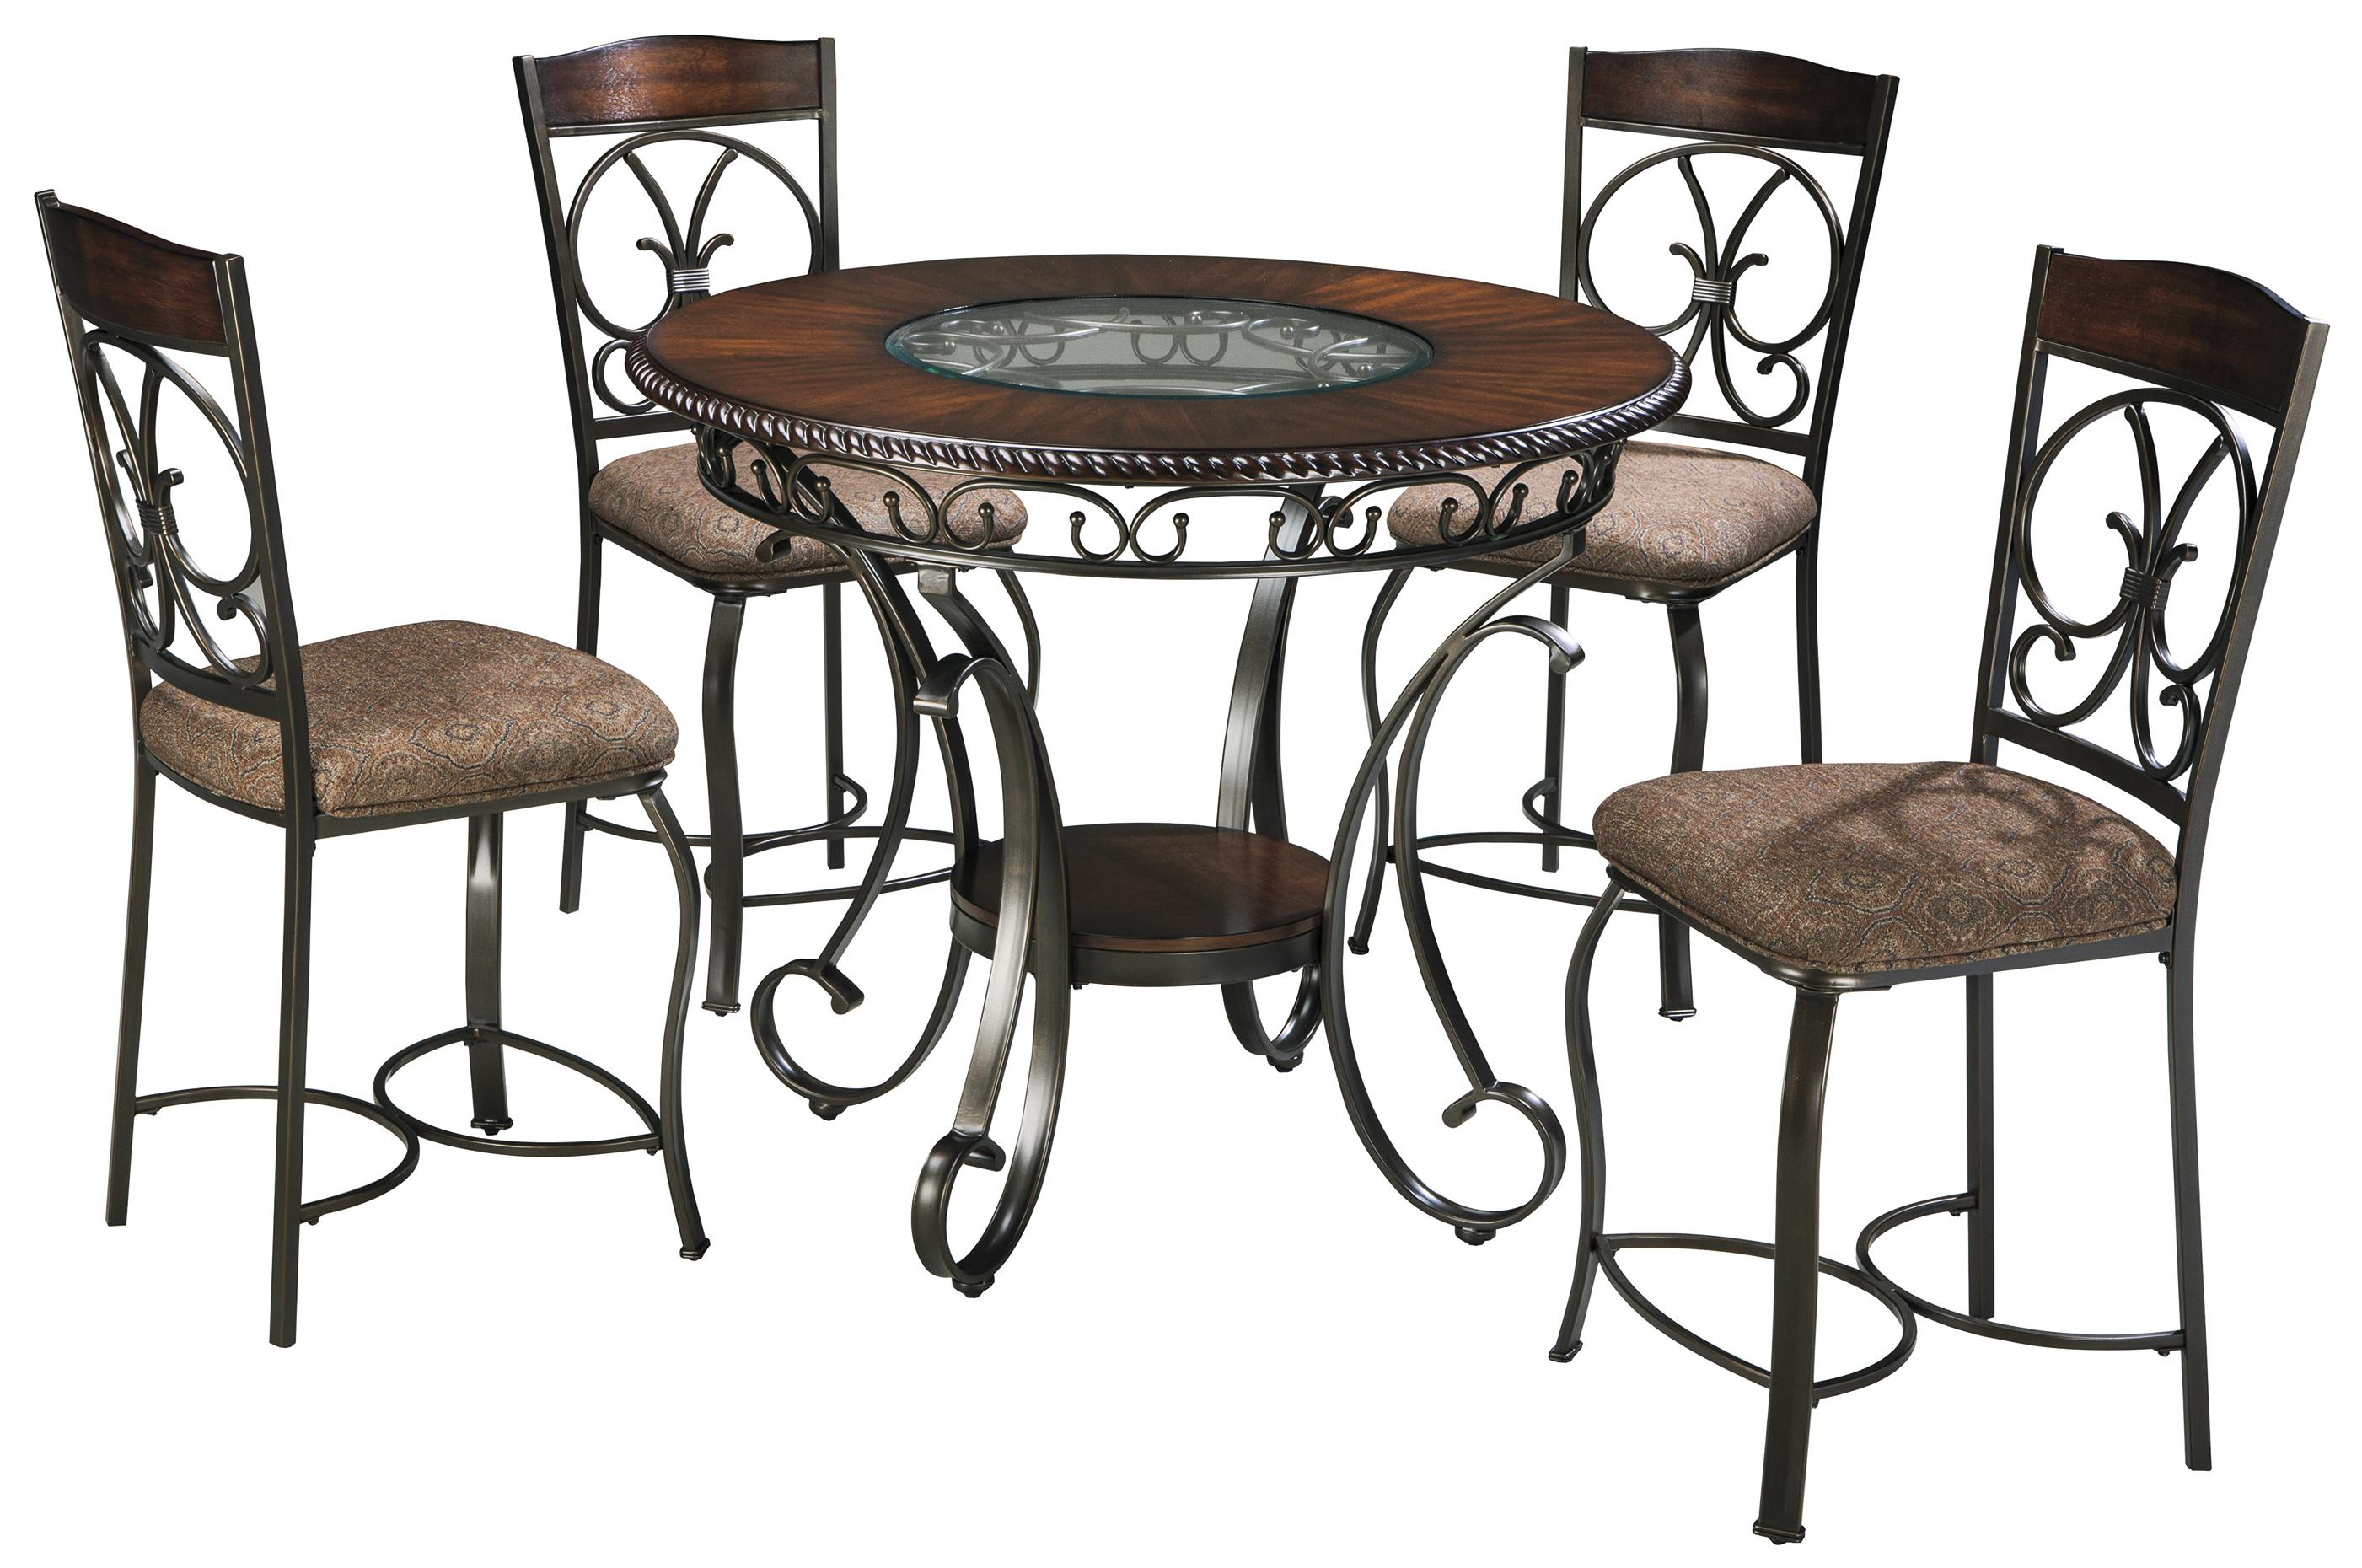 Glambrey Round Counter Table and Barstool Set by Signature Design by Ashley at Simply Home by Lindy's